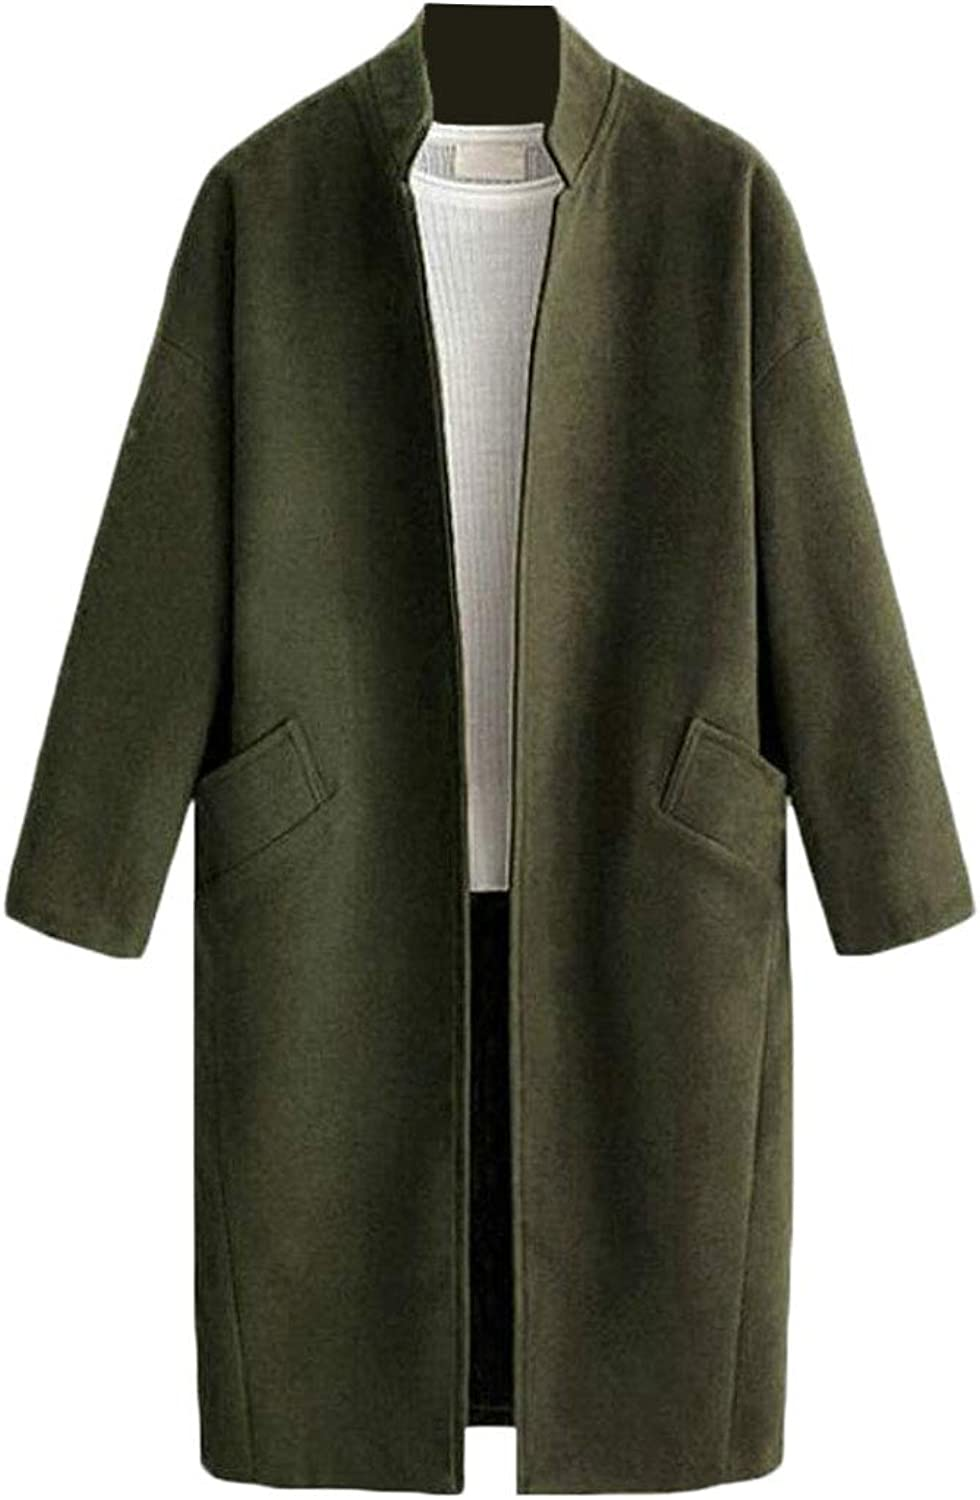 Esast Women Casual Cardigan Trench Coat Wool Blend Peacoats